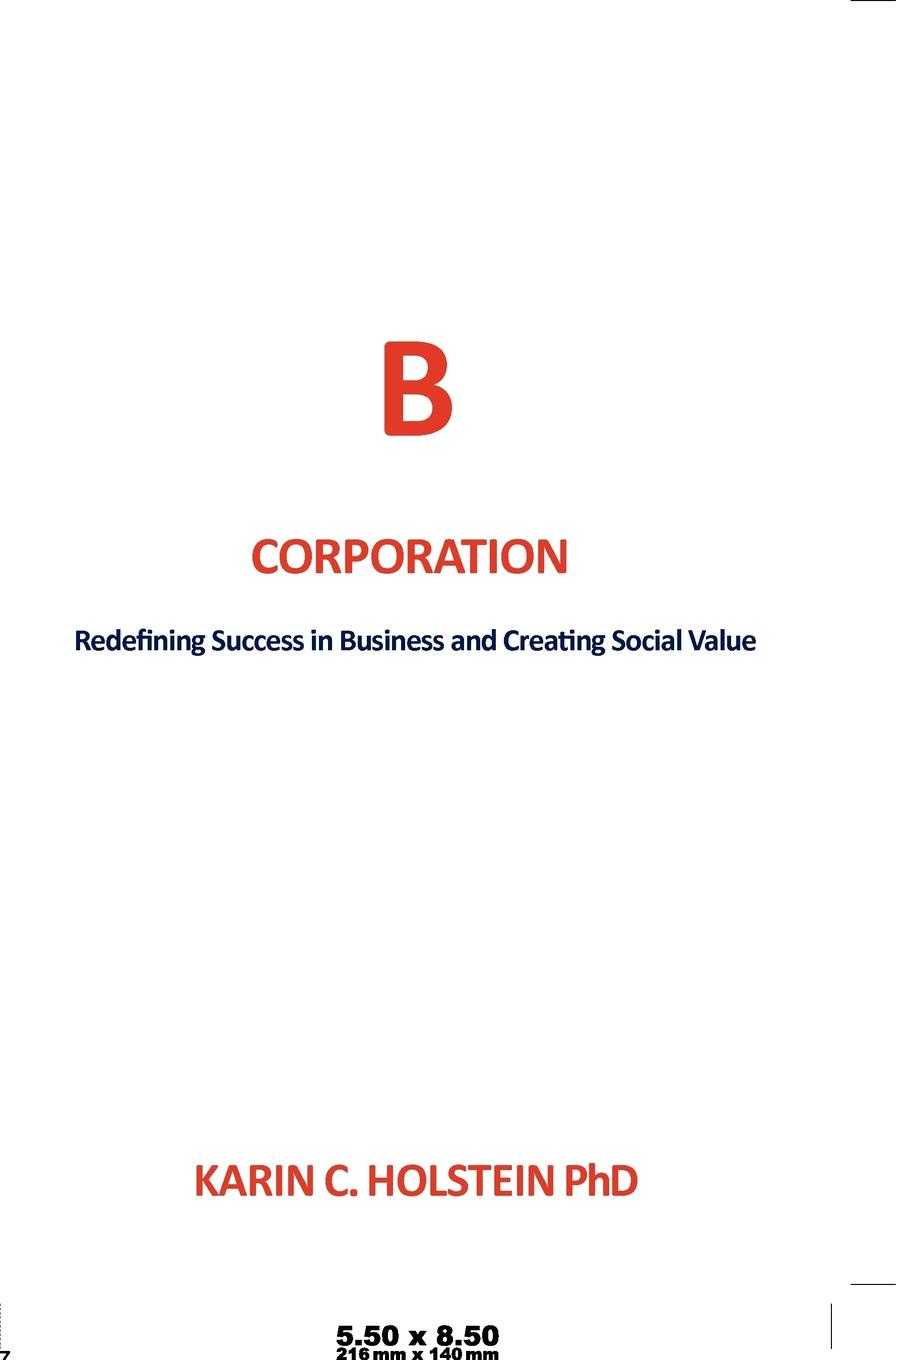 Фото - Karin C. Holstein Phd Business Ethics for a New Economy. Redefining Success in Business and Creating Social Value austin james e creating value in nonprofit business collaborations new thinking and practice